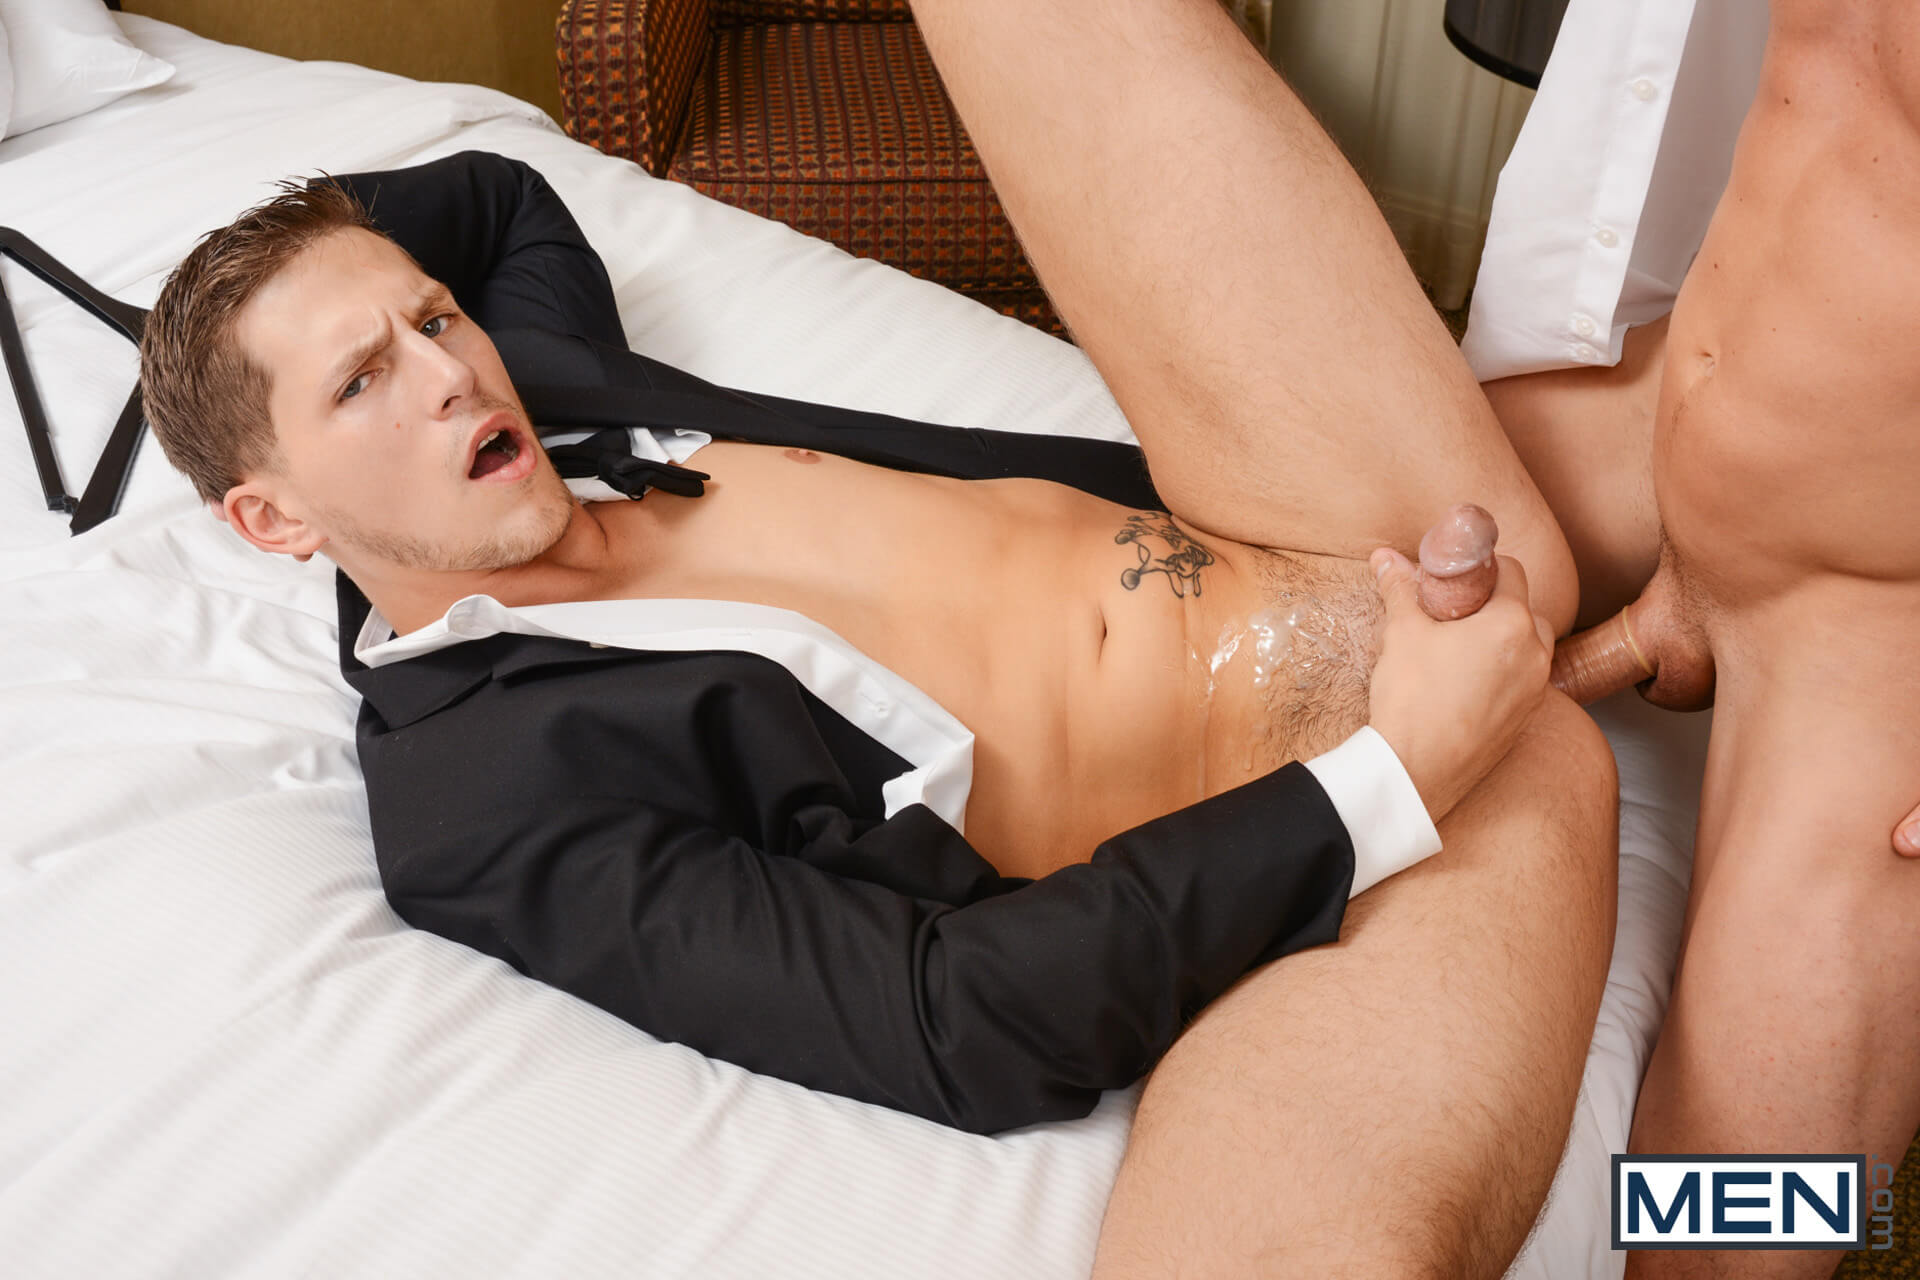 men str8 to gay the groomsmen part 1 darin silvers roman todd gay porn blog image 25